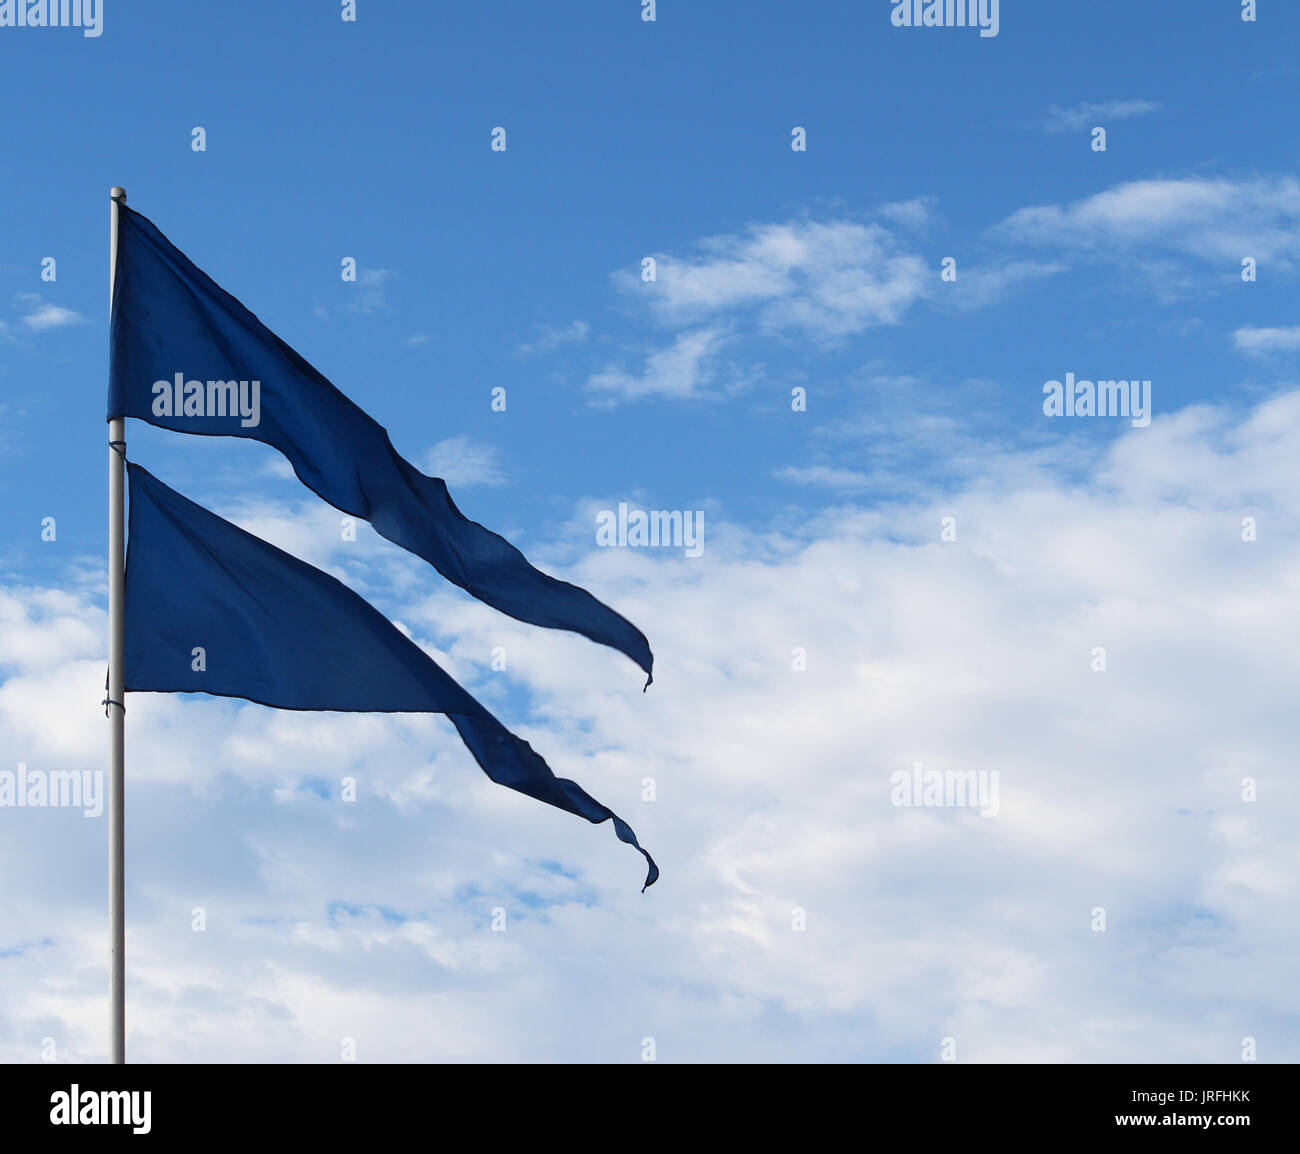 Blue triangular banner flags flying atop flagpole against sky - Stock Image